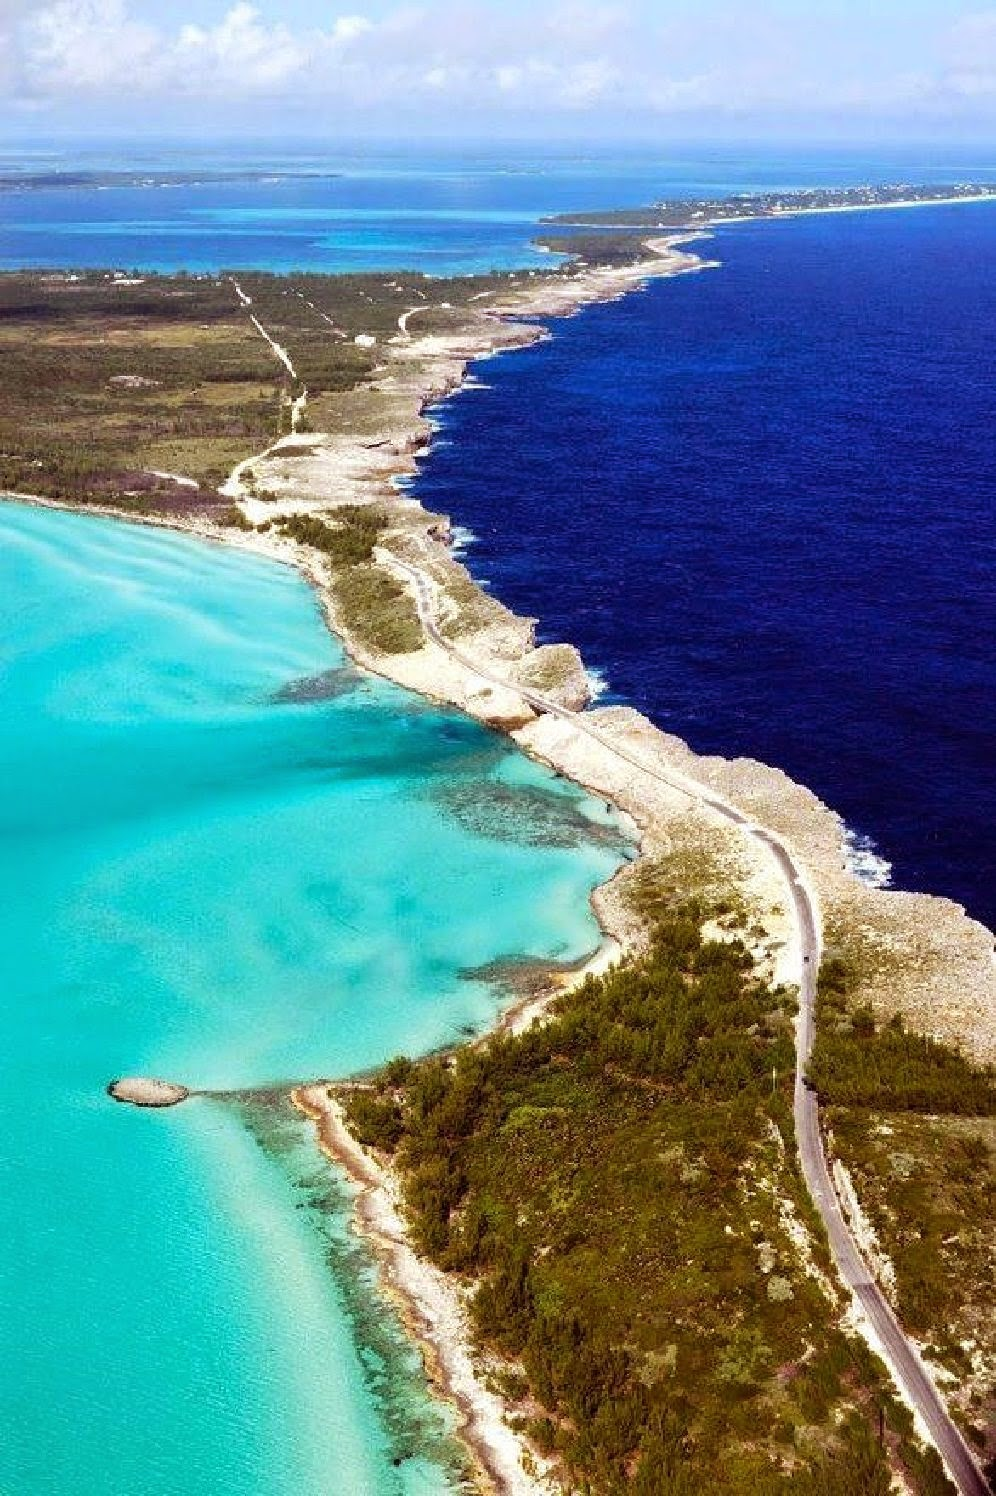 BAHAMAS, ATLANTIC OCEAN 10 Most Beautiful Island Countries in the World